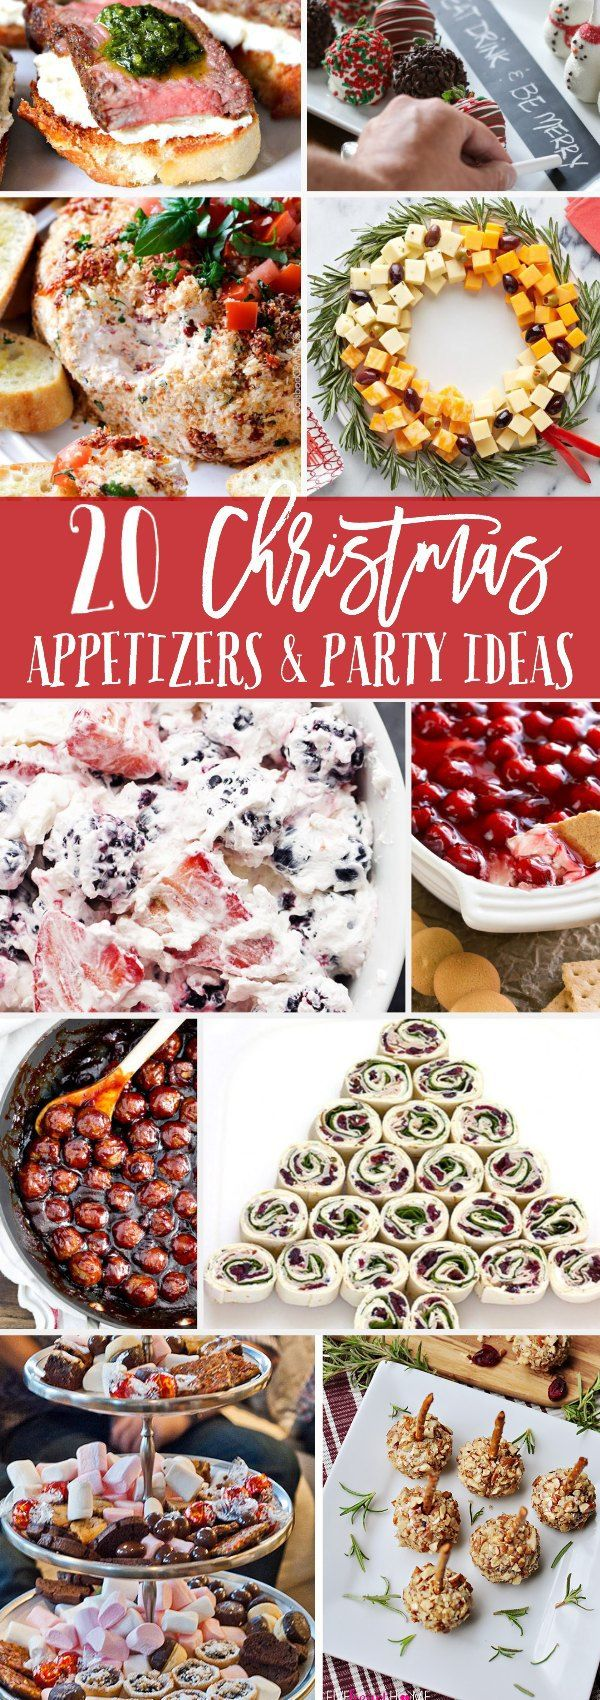 Food Christmas Appetizers And Party Ideas